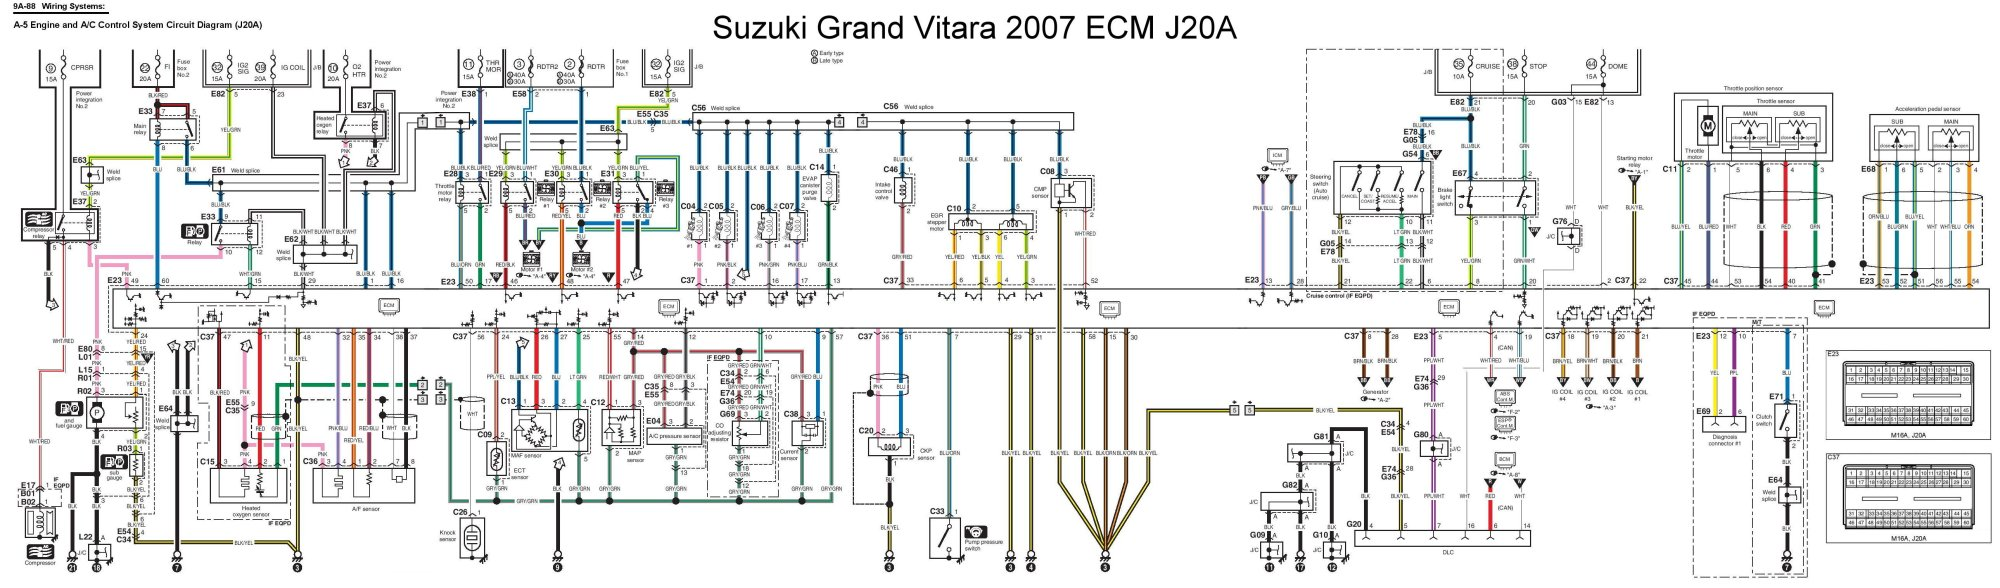 hight resolution of 1999 suzuki grand vitara engine diagram wiring diagram paper wiring diagram suzuki grand vitara 2008 suzuki